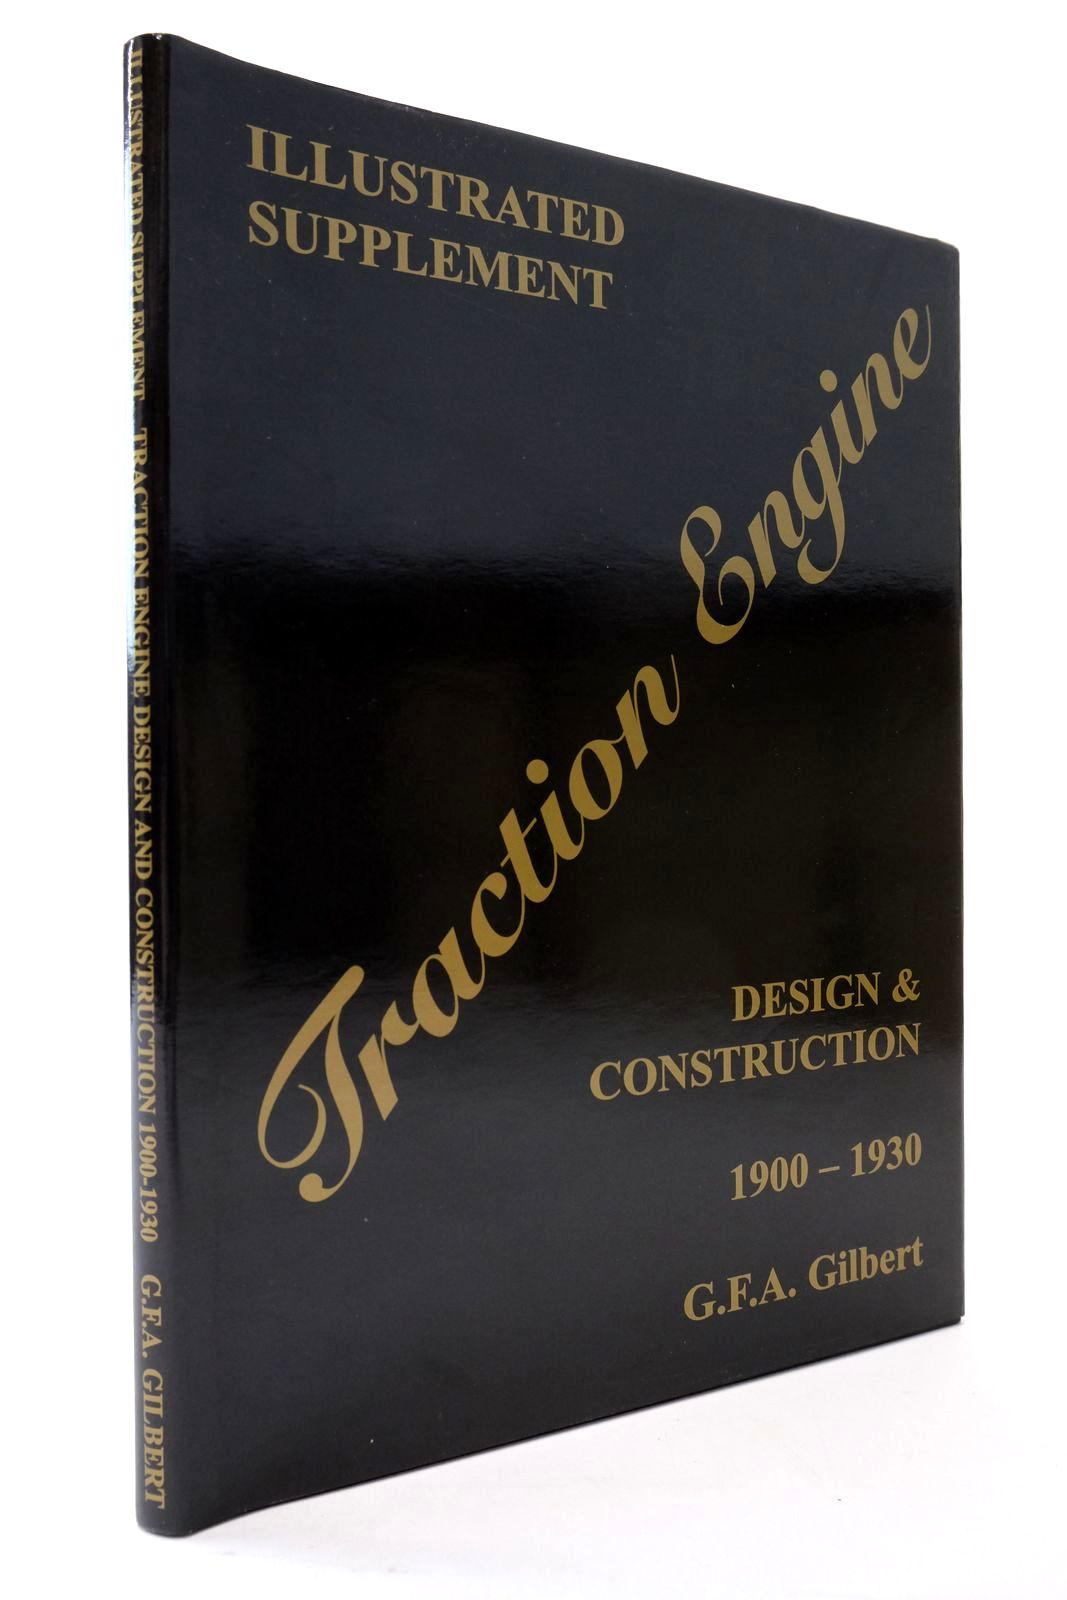 Photo of TRACTION ENGINE DESIGN AND CONSTRUCTION 1900-1930 ILLUSTRATED SUPPLEMENT written by Gilbert, G.F.A. published by Geoffrey Gilbert (STOCK CODE: 2134448)  for sale by Stella & Rose's Books